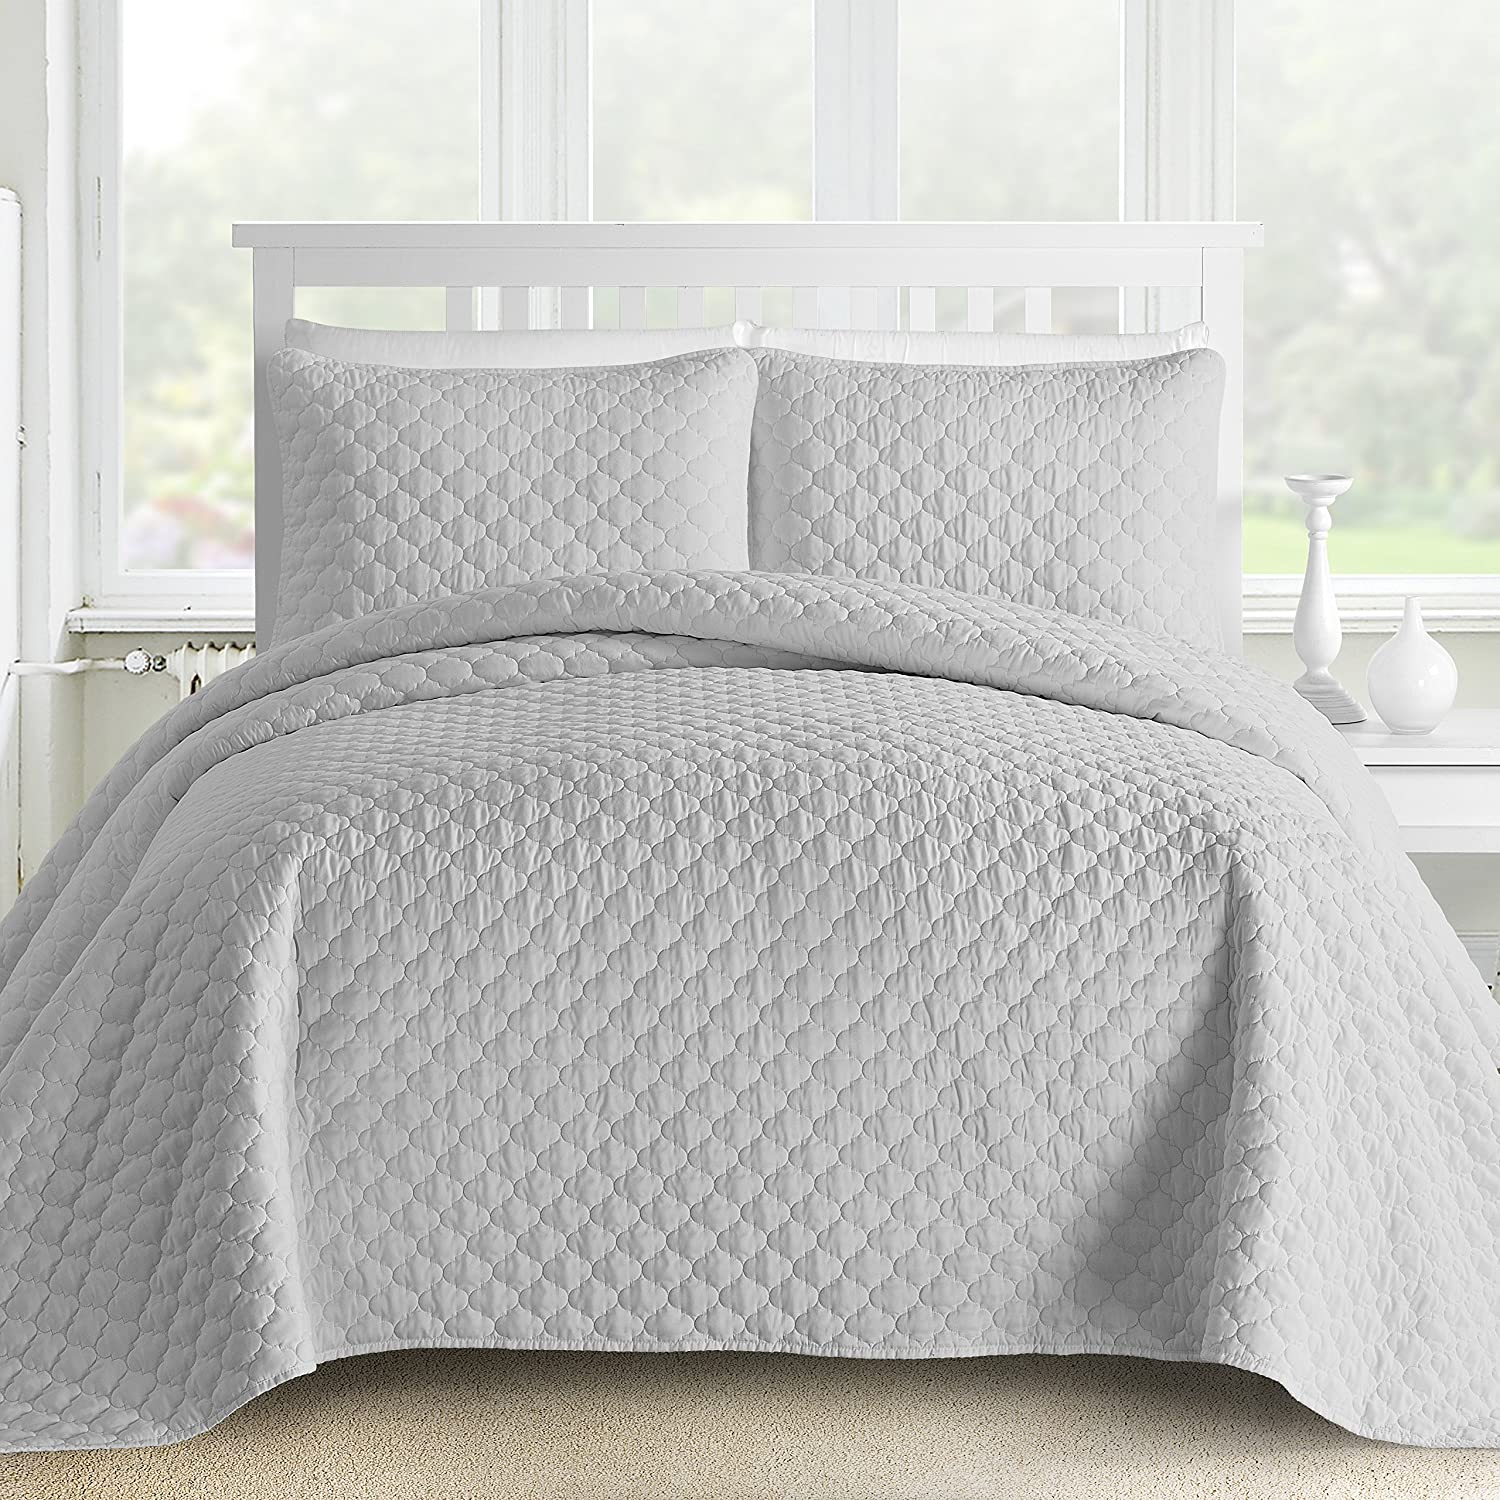 Comfy Bedding Oversized and Prewashed Lantern Ogee Quilted 3-piece Bedspread Coverlet Set (Full/Queen, Beige)